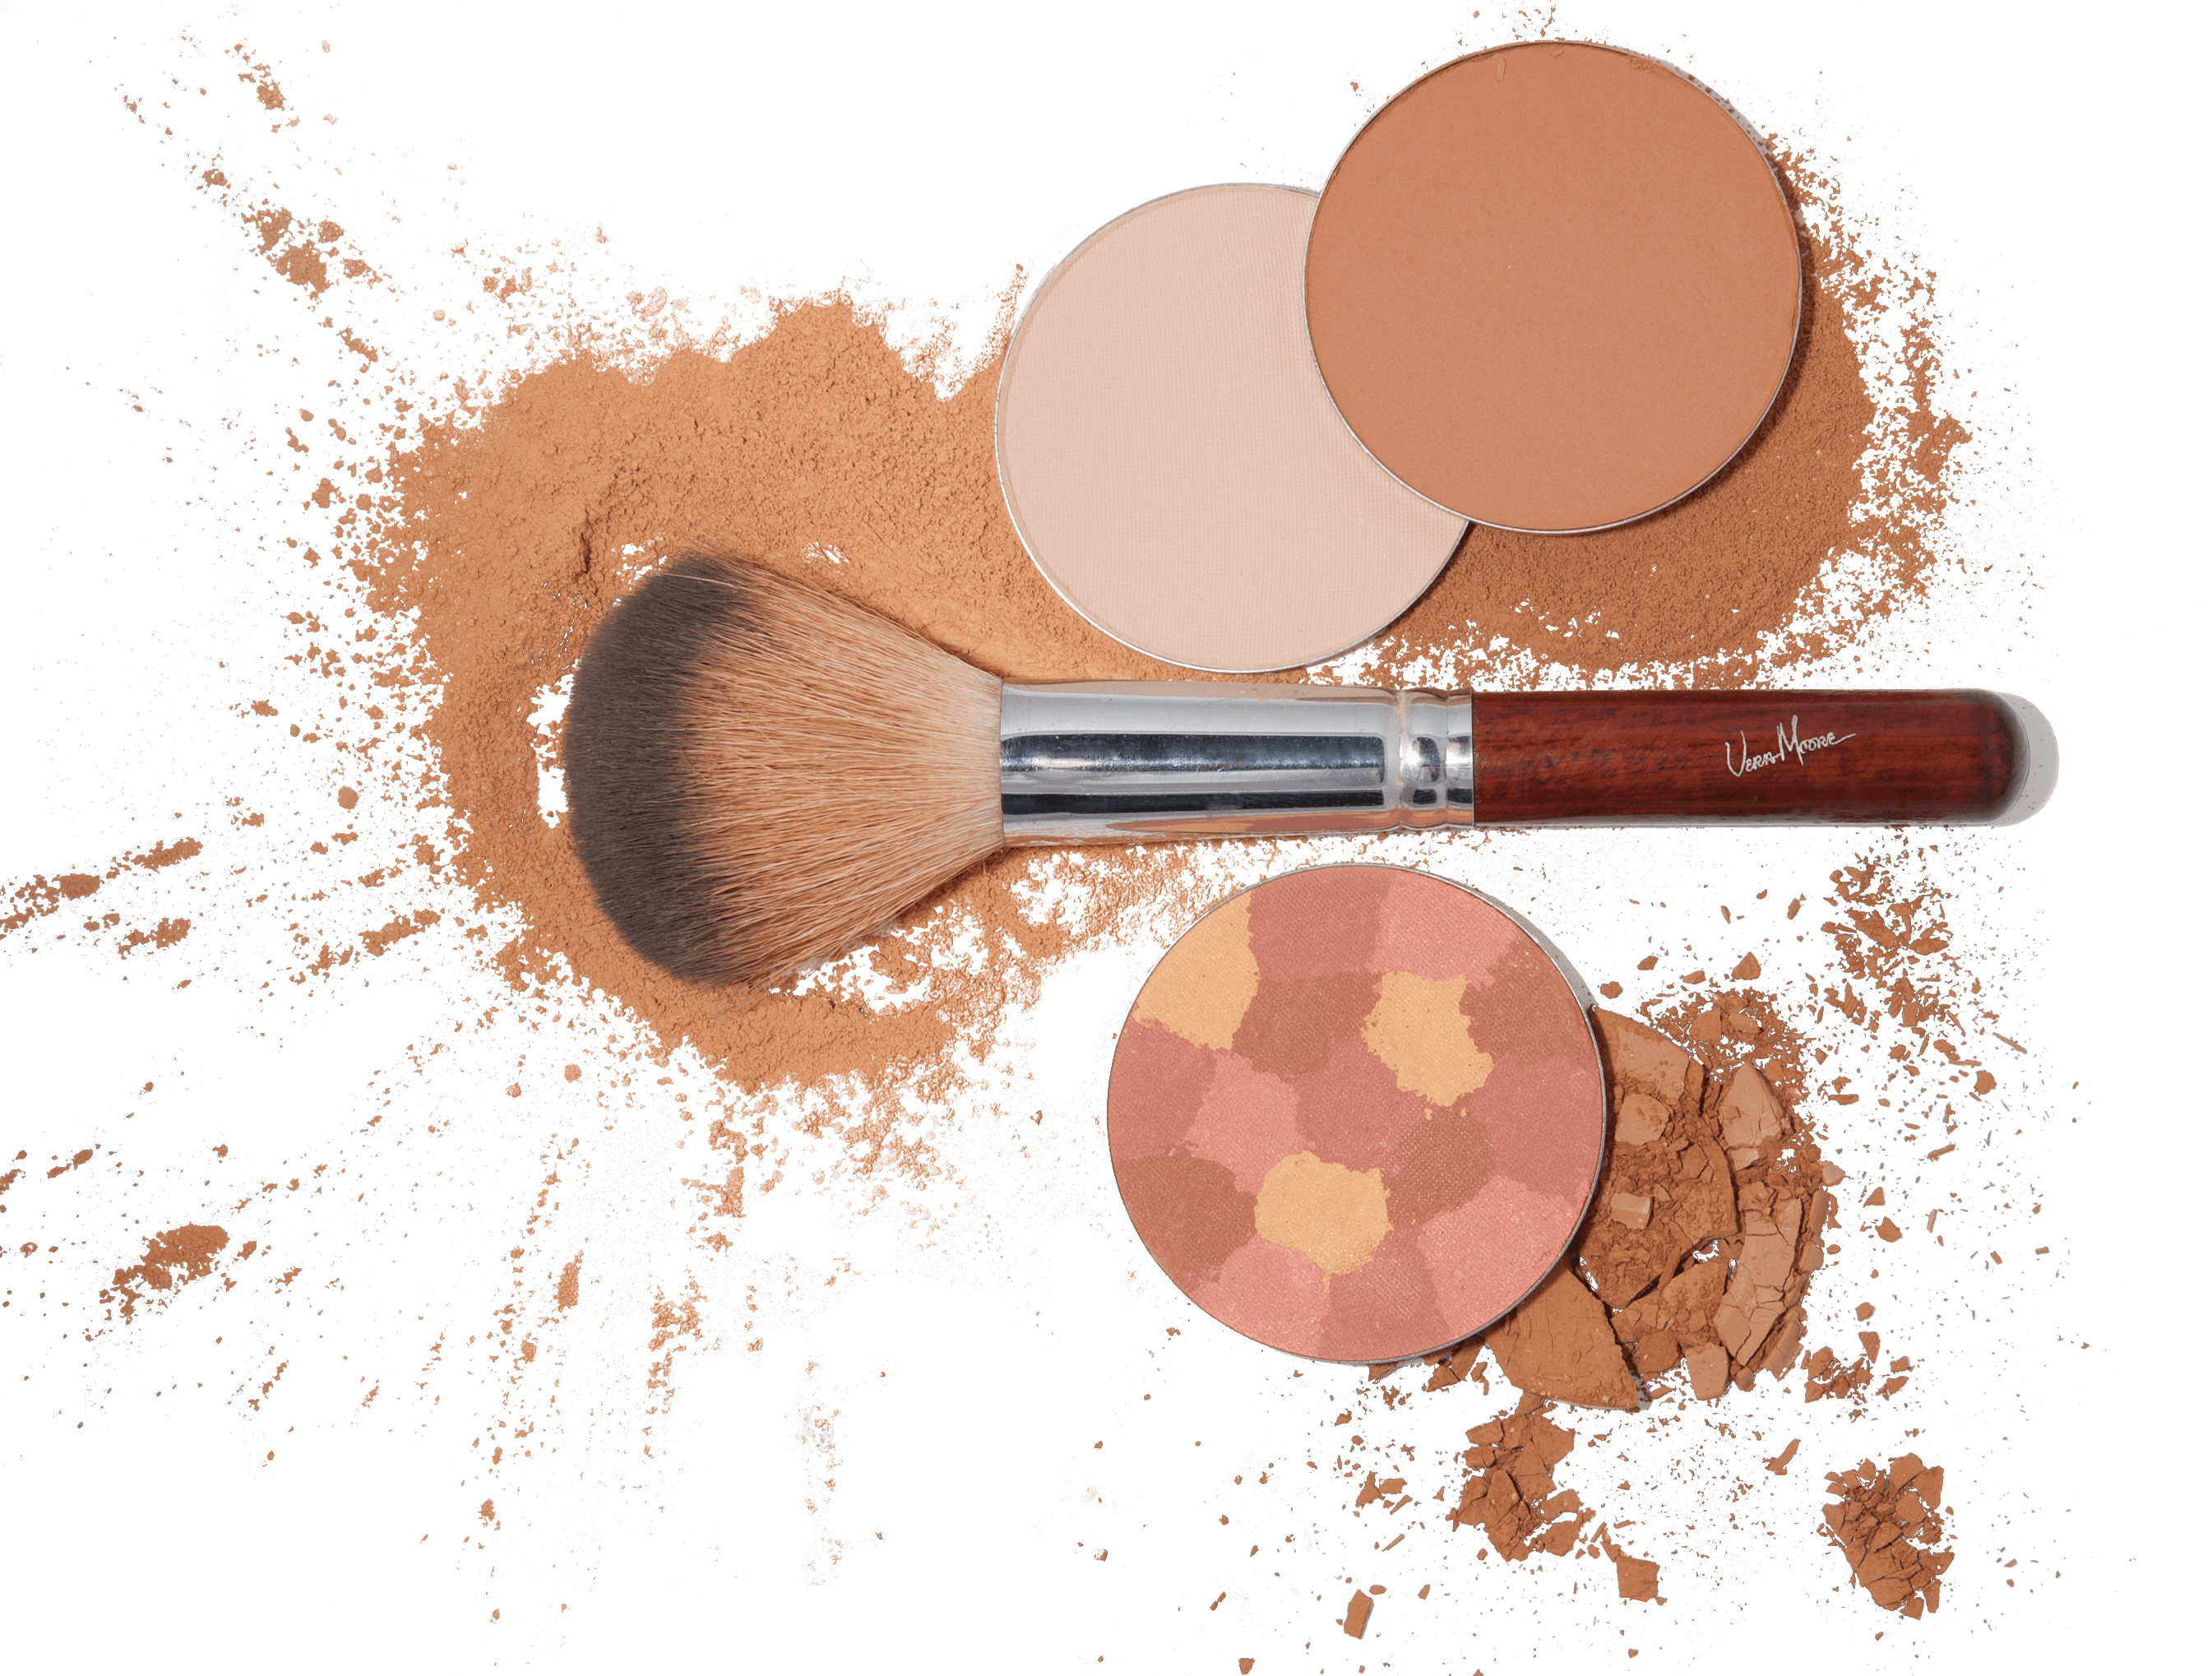 Frame clipart makeup. Collection of free blushed